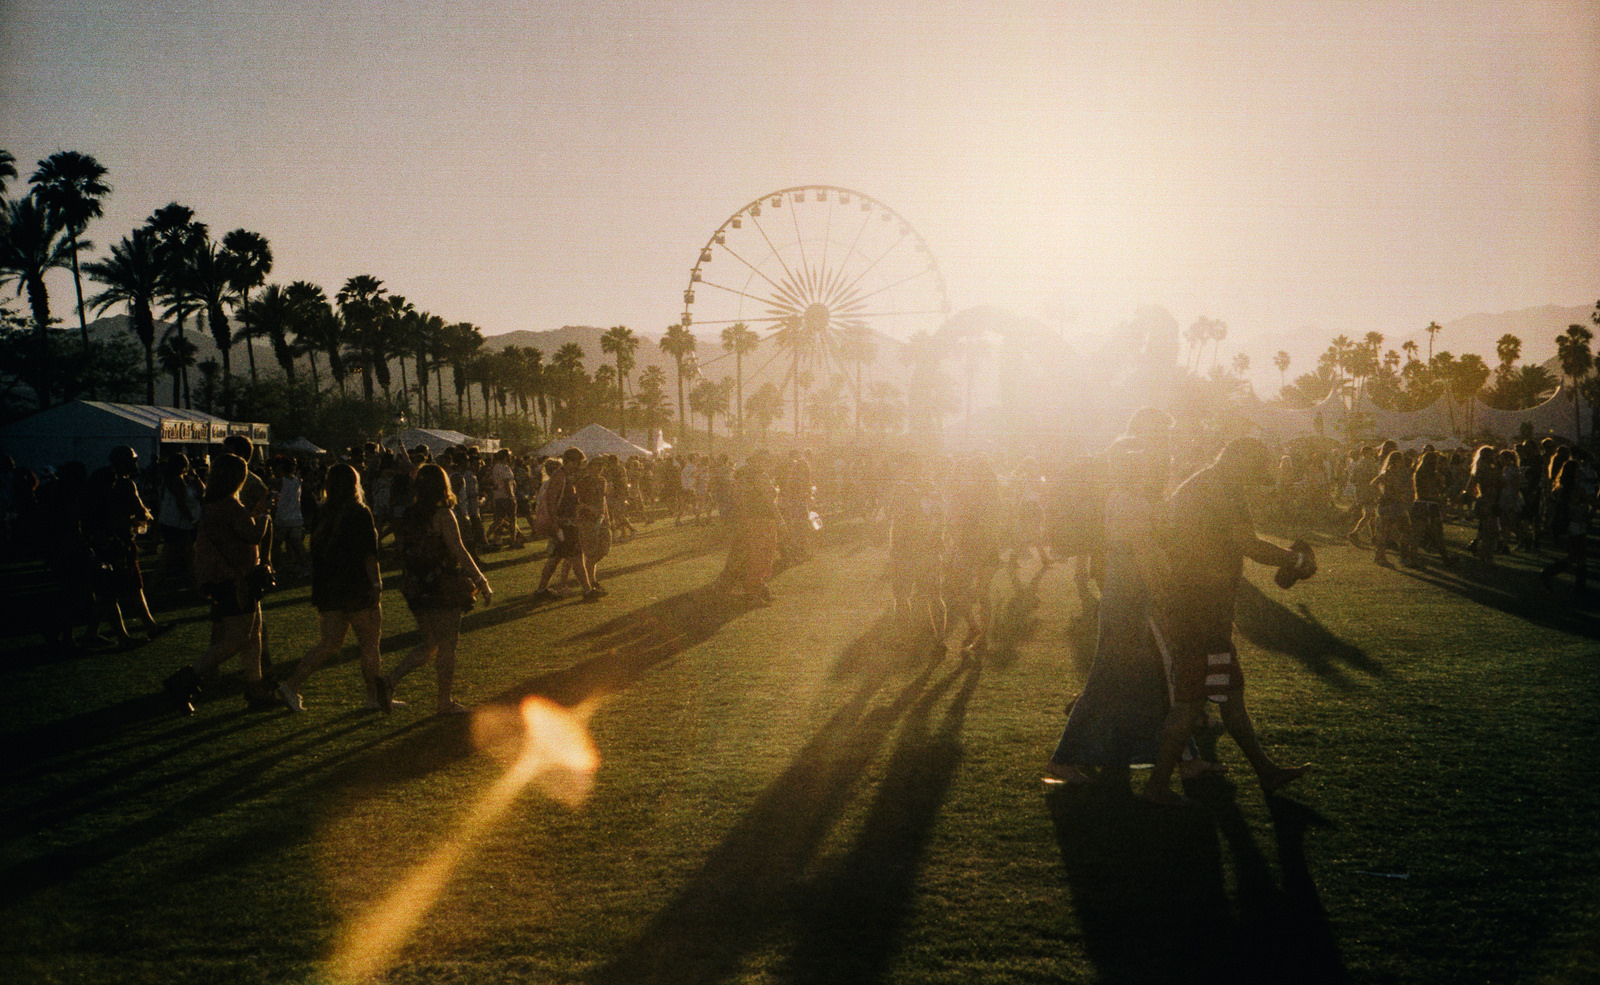 Livestream Coachella for Quality Music Acts on Four Different Stages